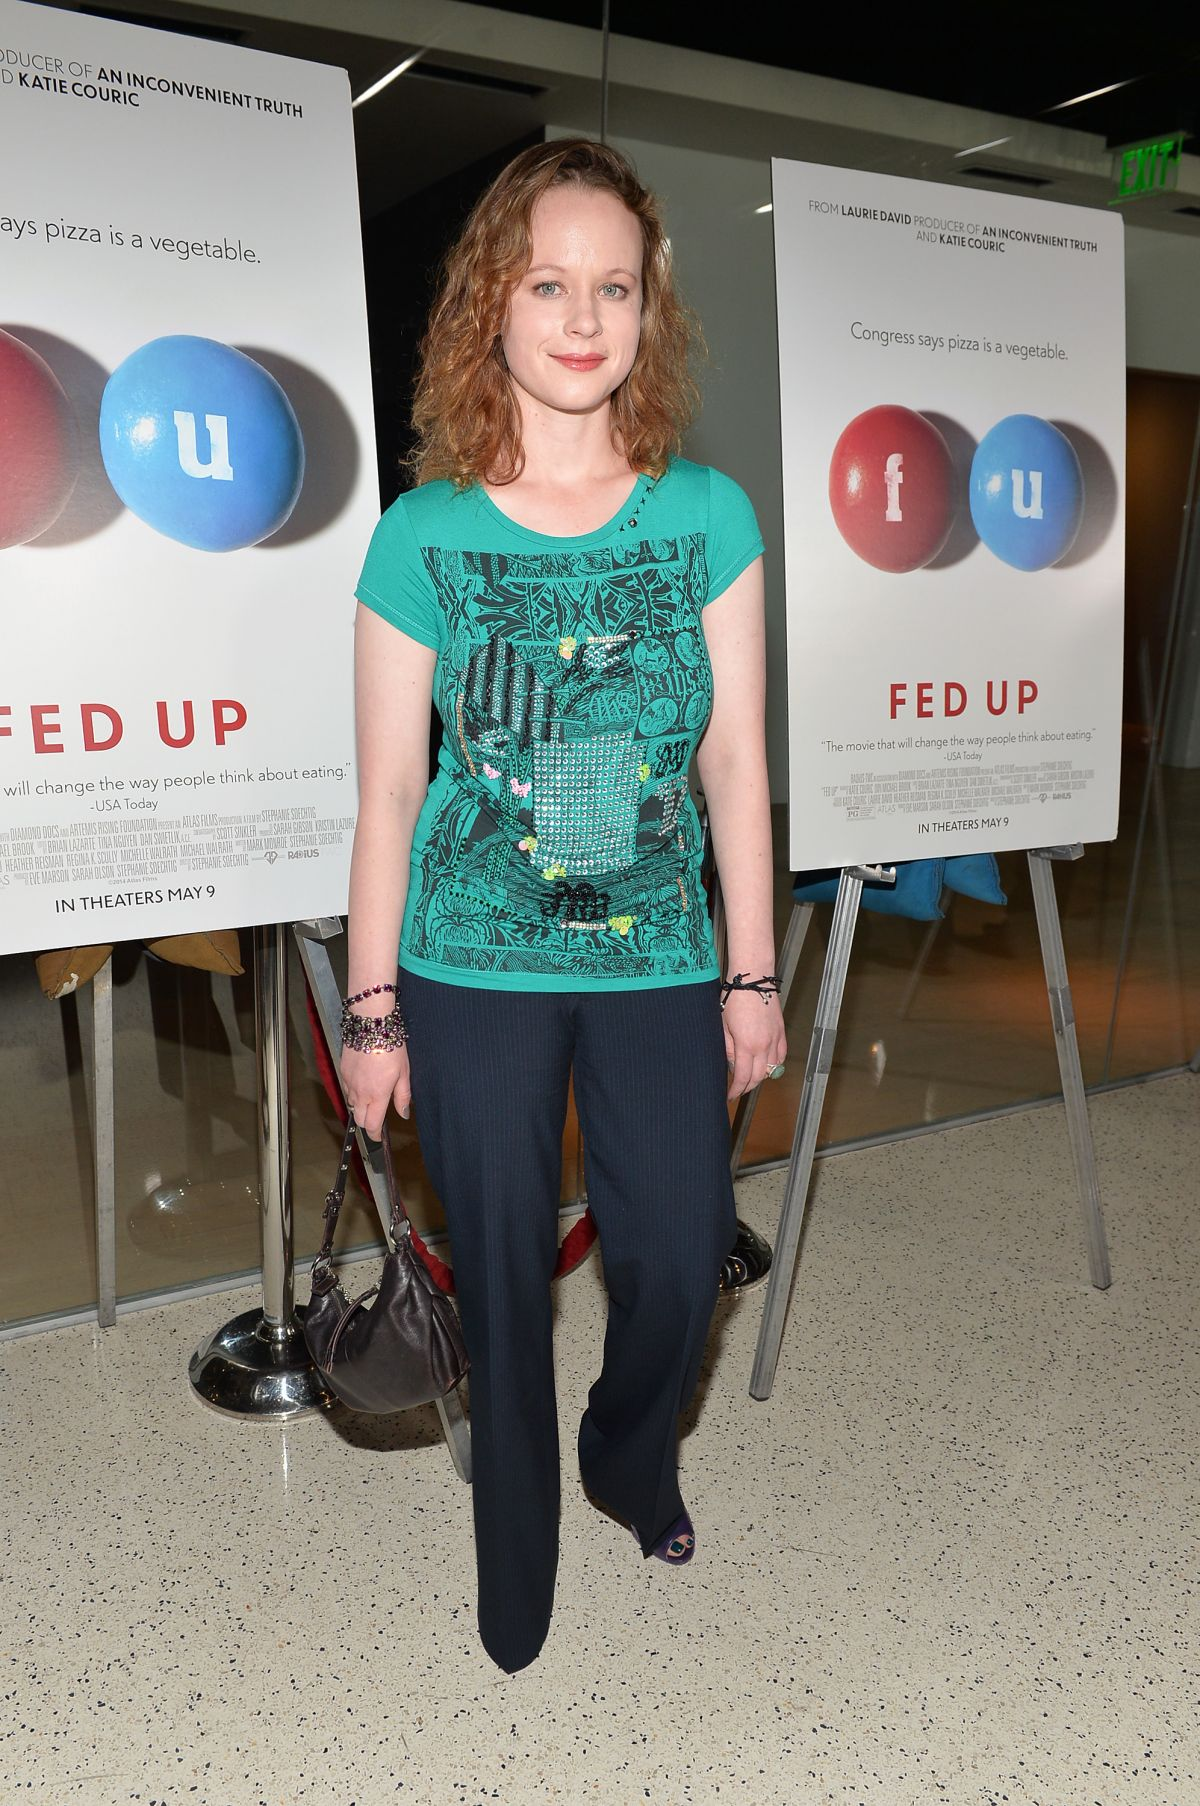 THORA BIRCH at Fed Up Premiere in Los Angeles